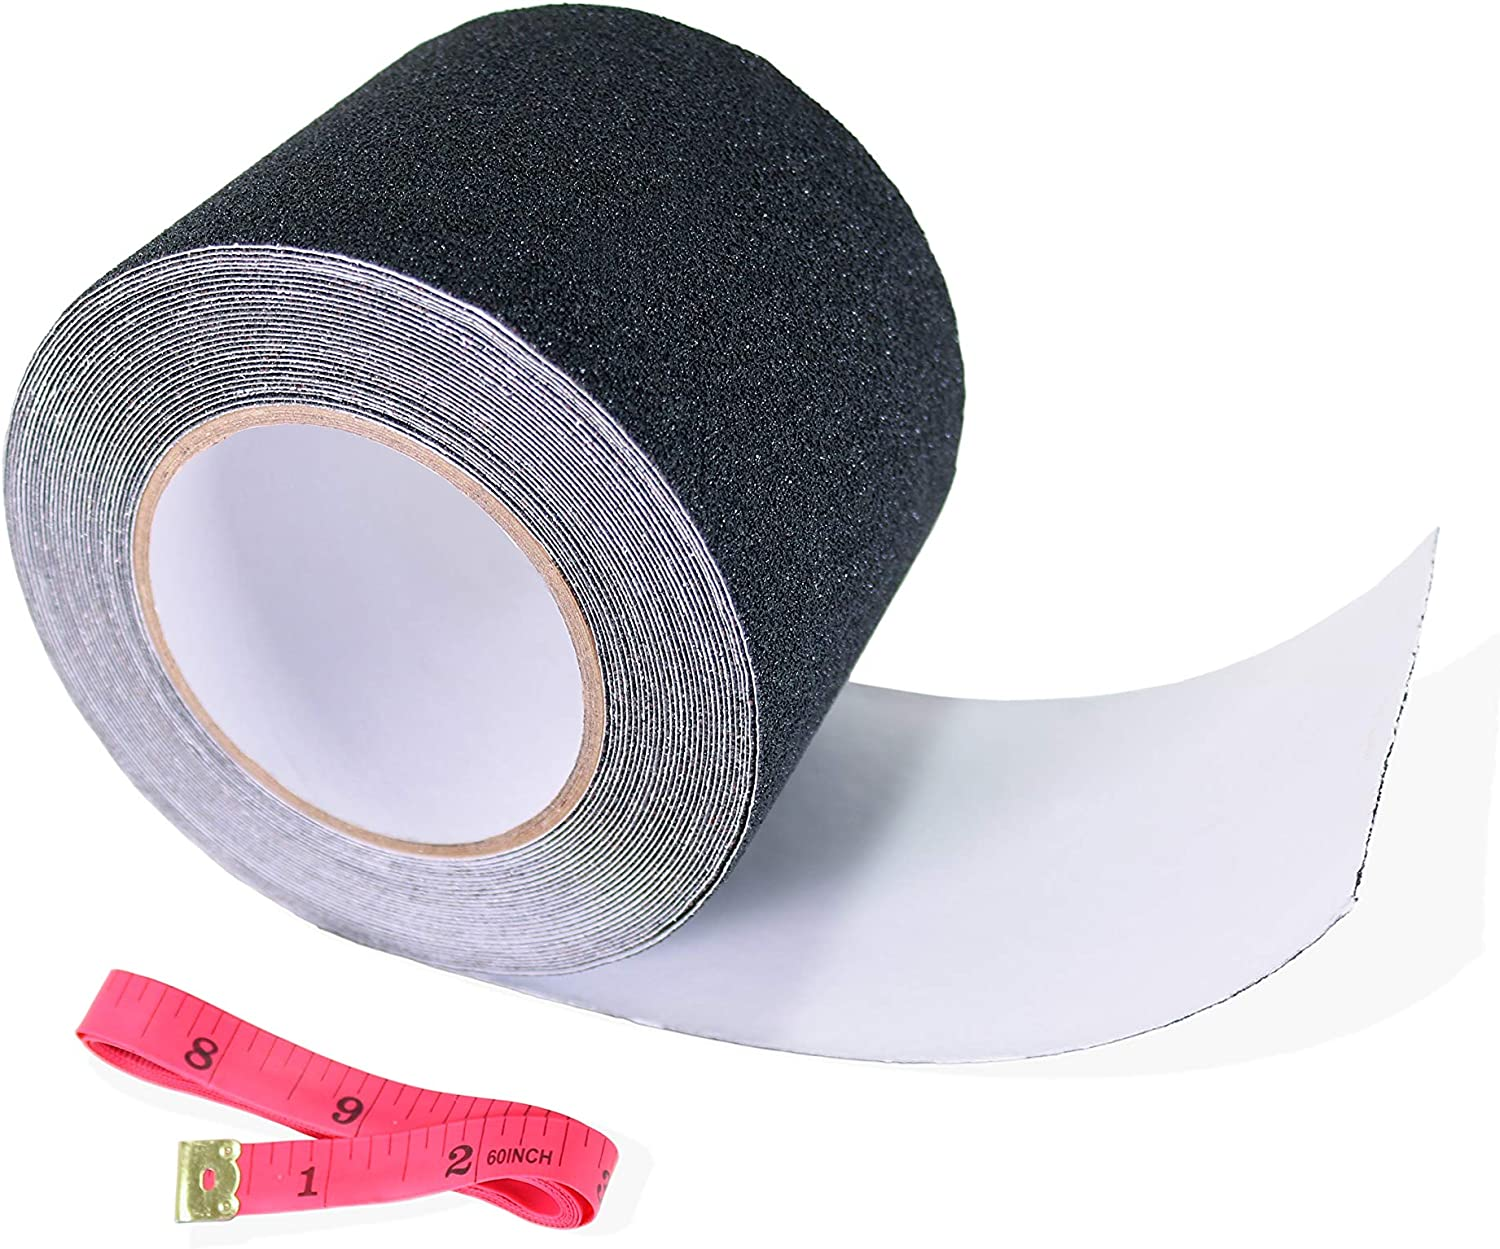 Anti Slip Tape for Indoor and Outdoor Steps, Ramps, Walkways, an